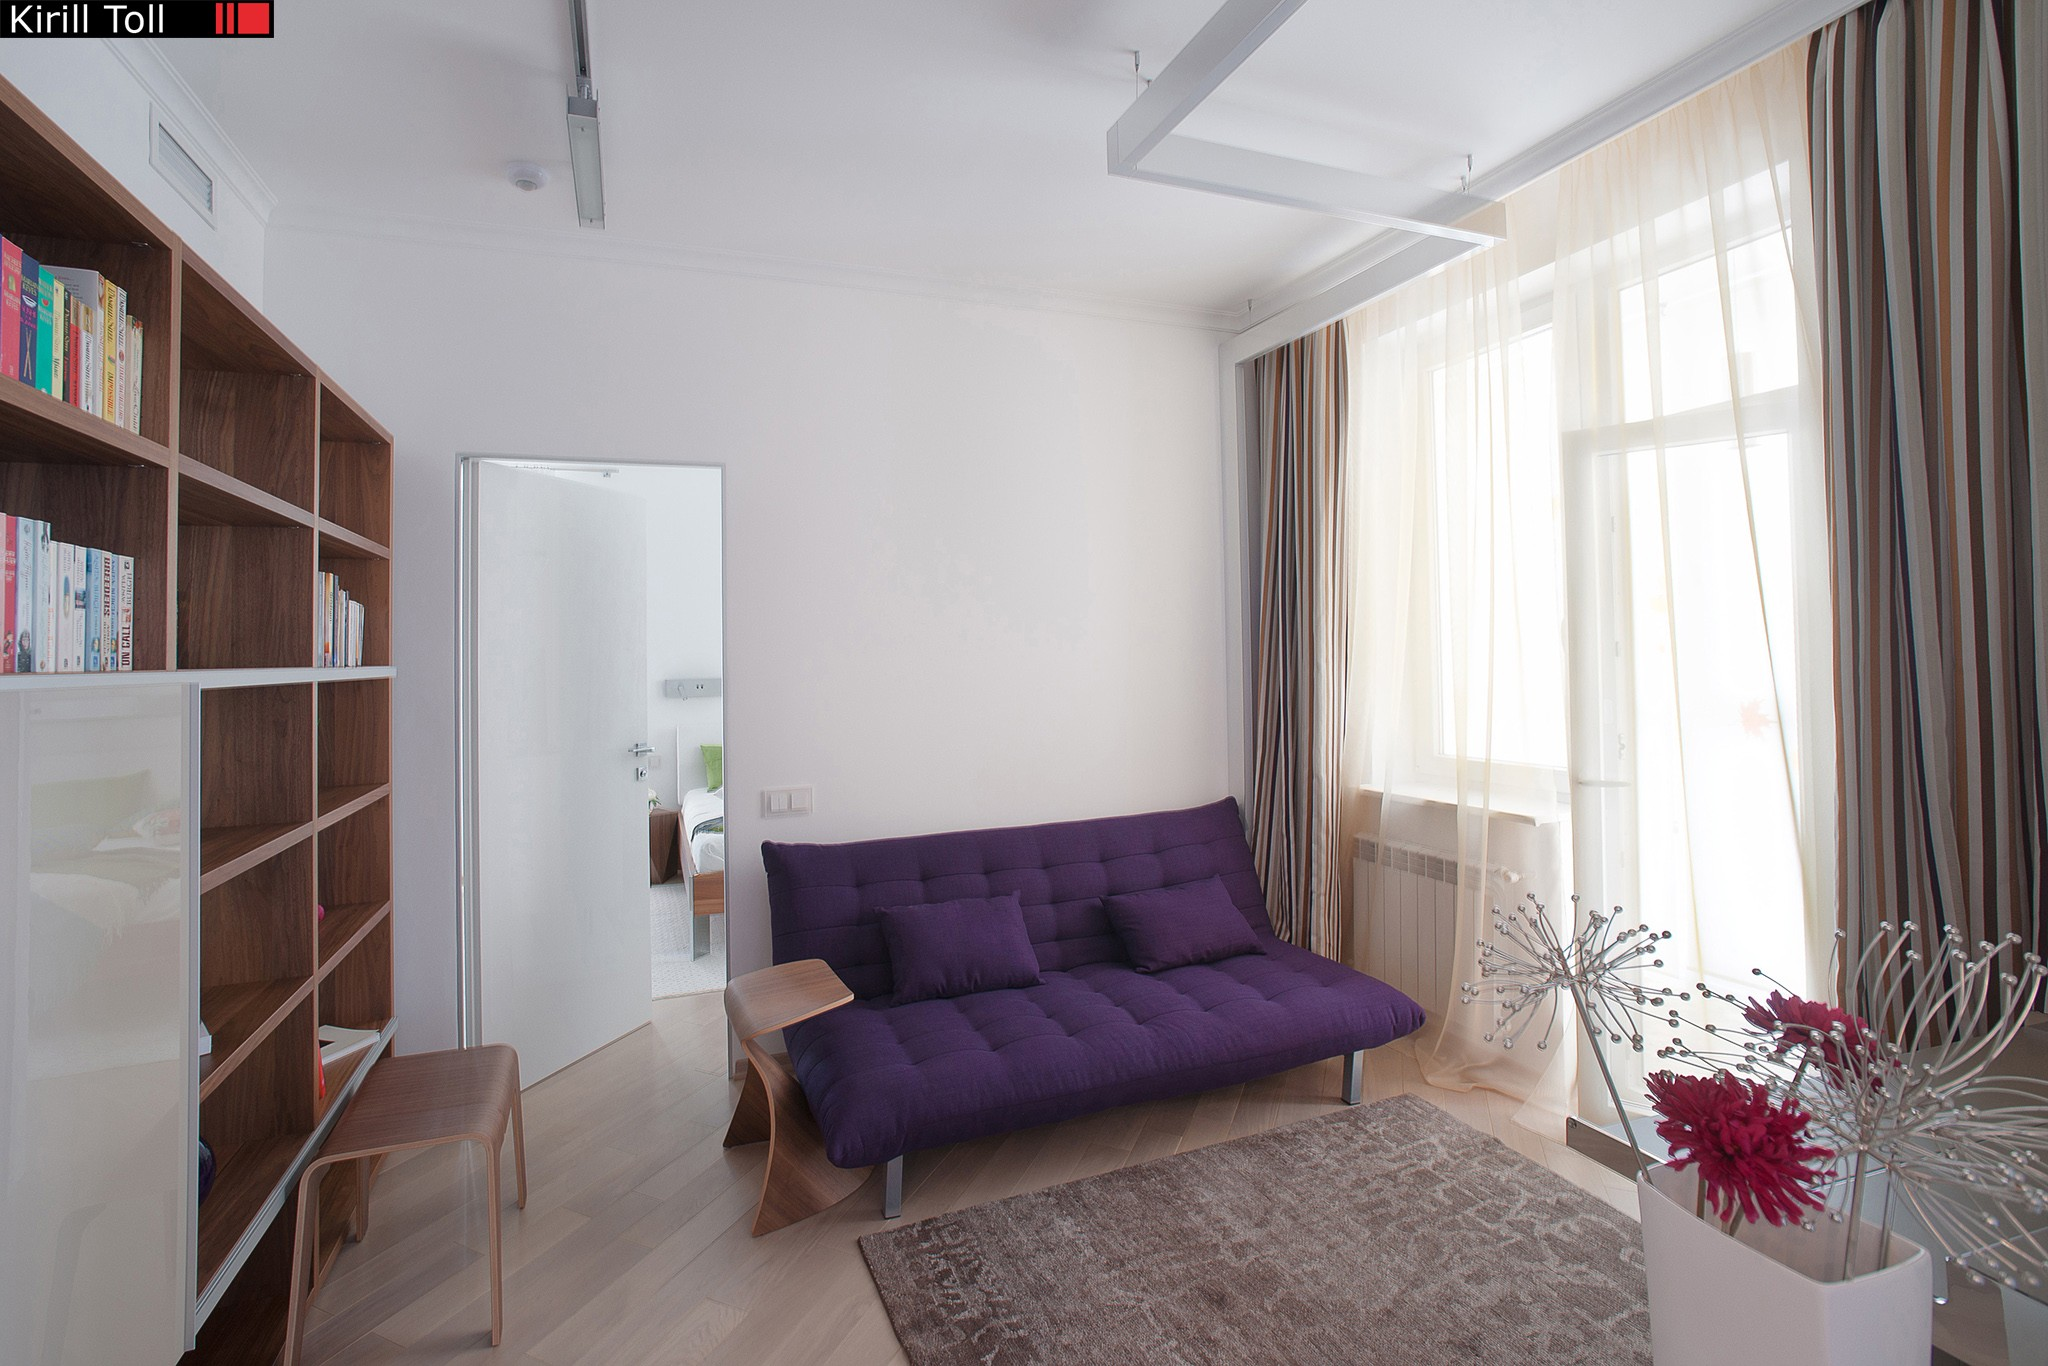 36 photos from one apartment. Interior photography